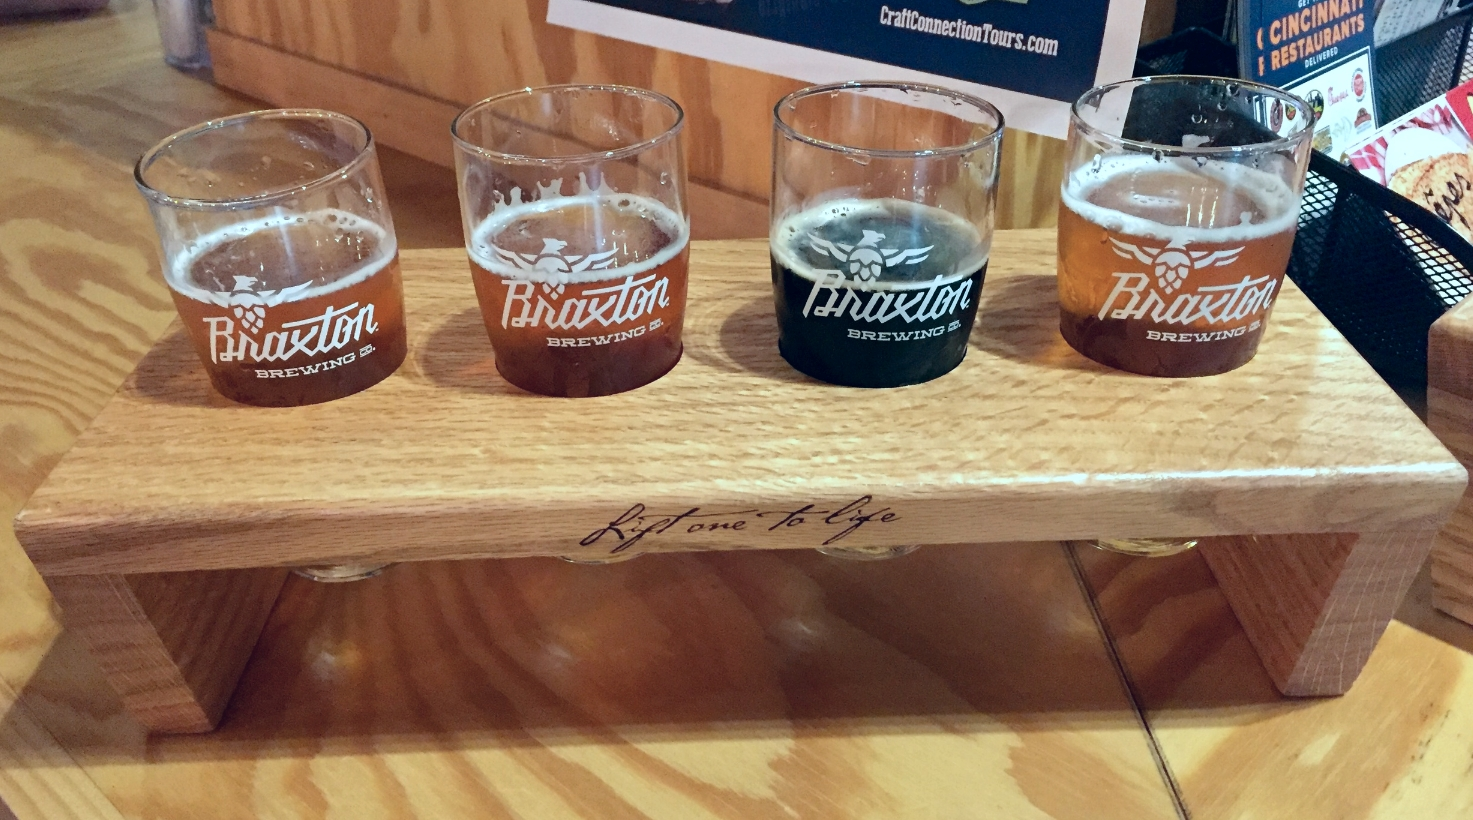 My Hefeweizen, IPAs, and Stout at the Braxton Brewing Company